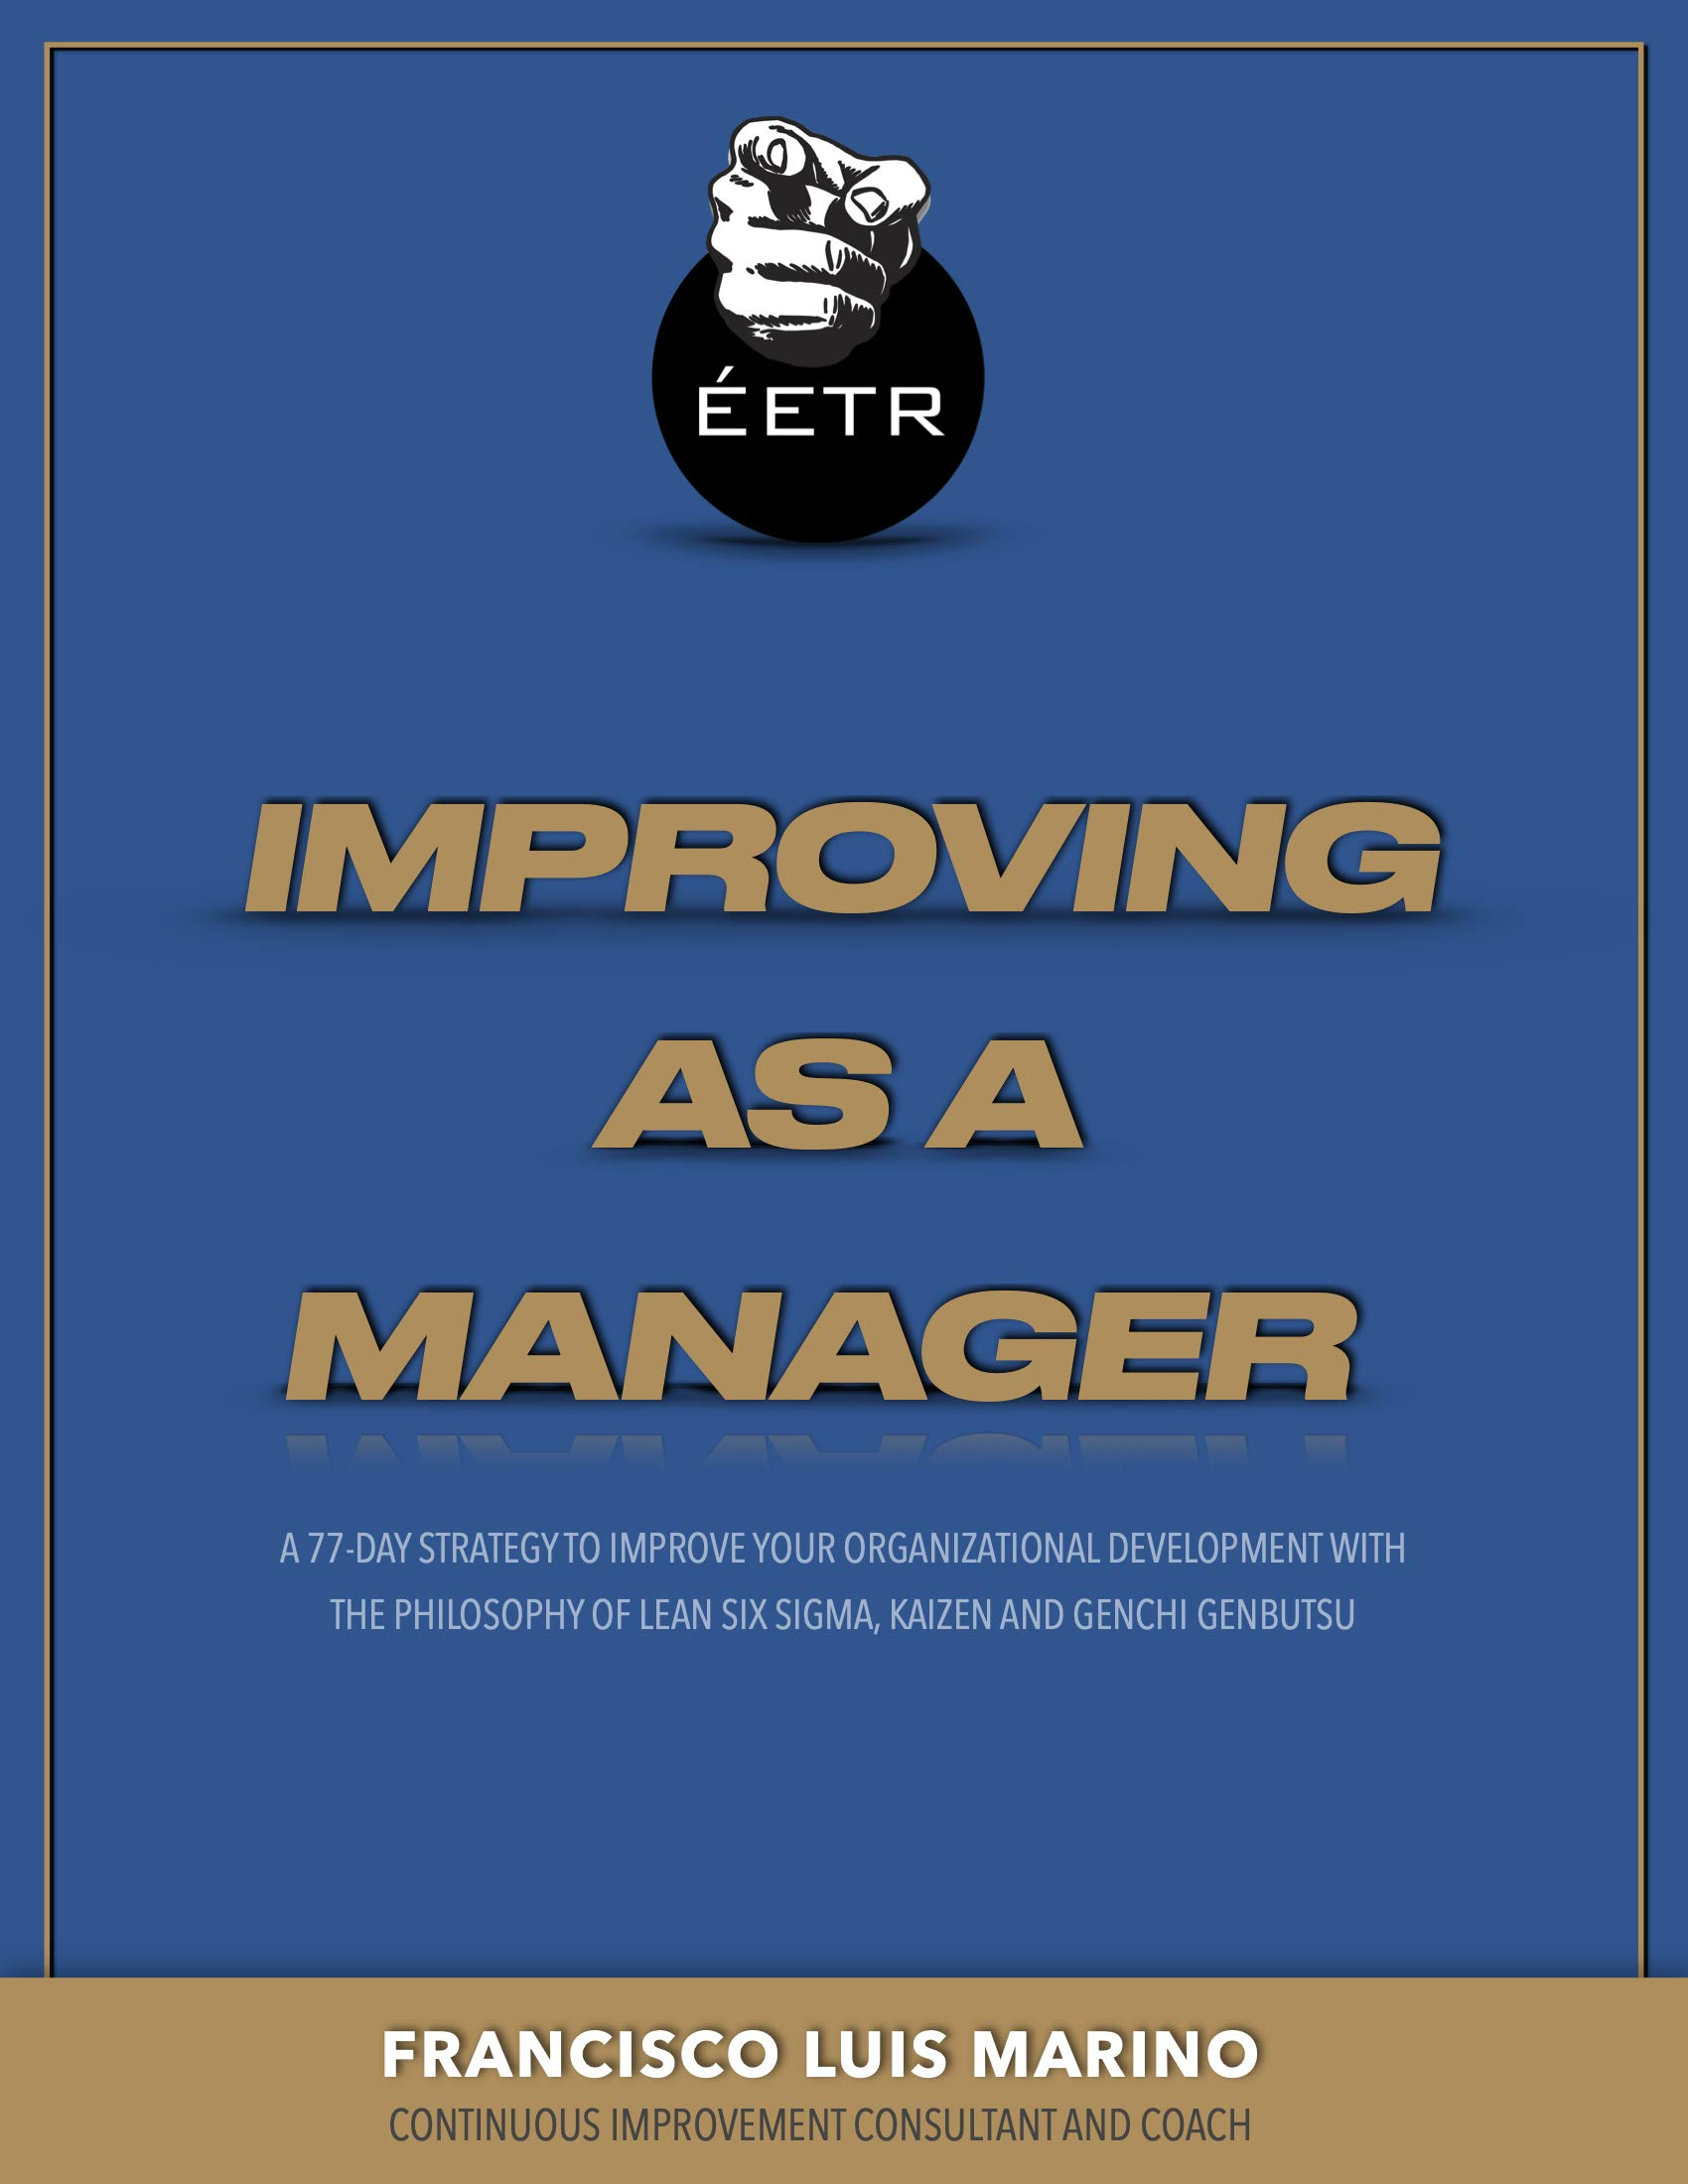 Improving as a Manager: 77-day strategy to improve your organizational development with the philosophy of Lean Six Sigma, Kaizen and Genchi Genbutsu.